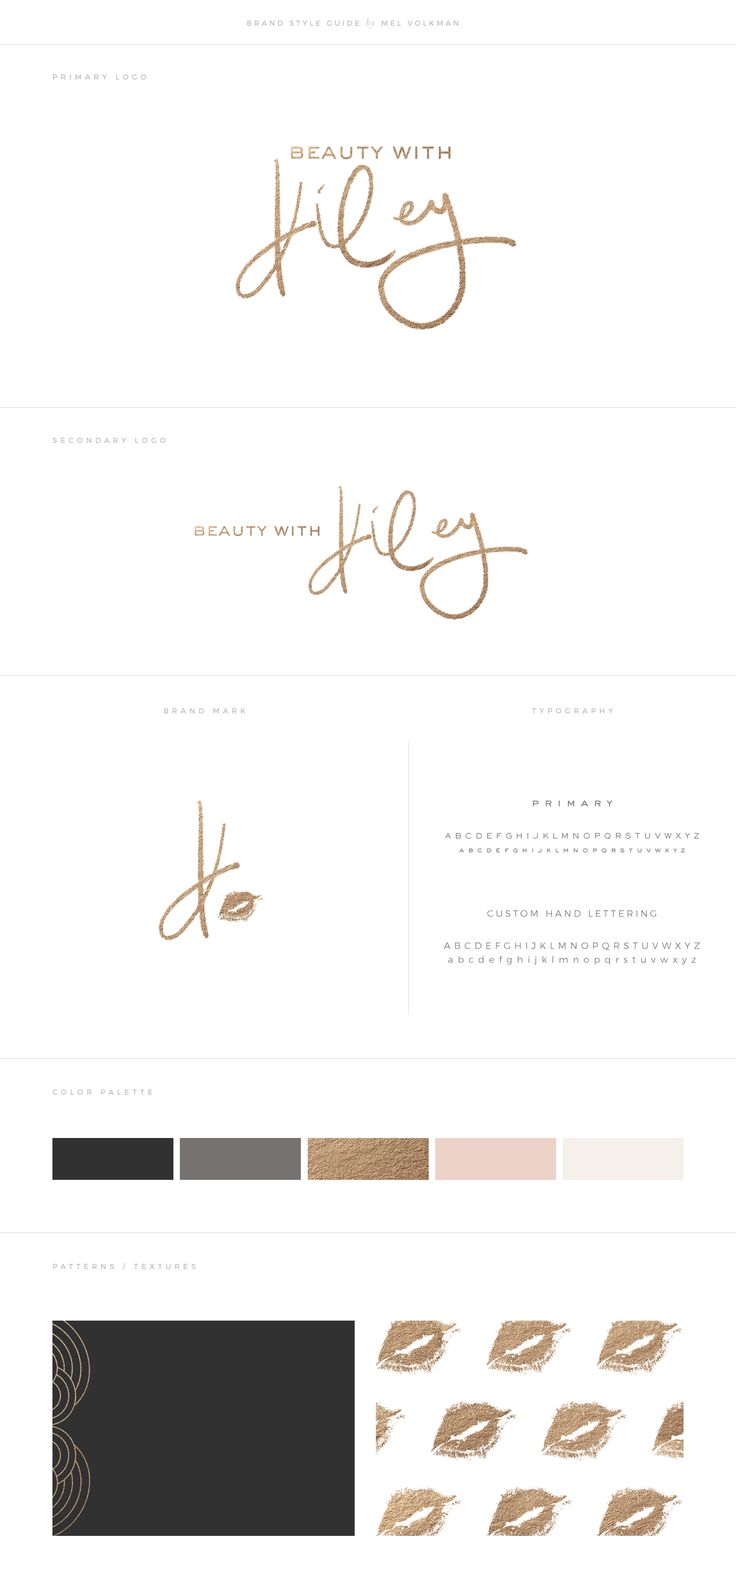 Beauty with kiley beautiful modern calligraphy and examples